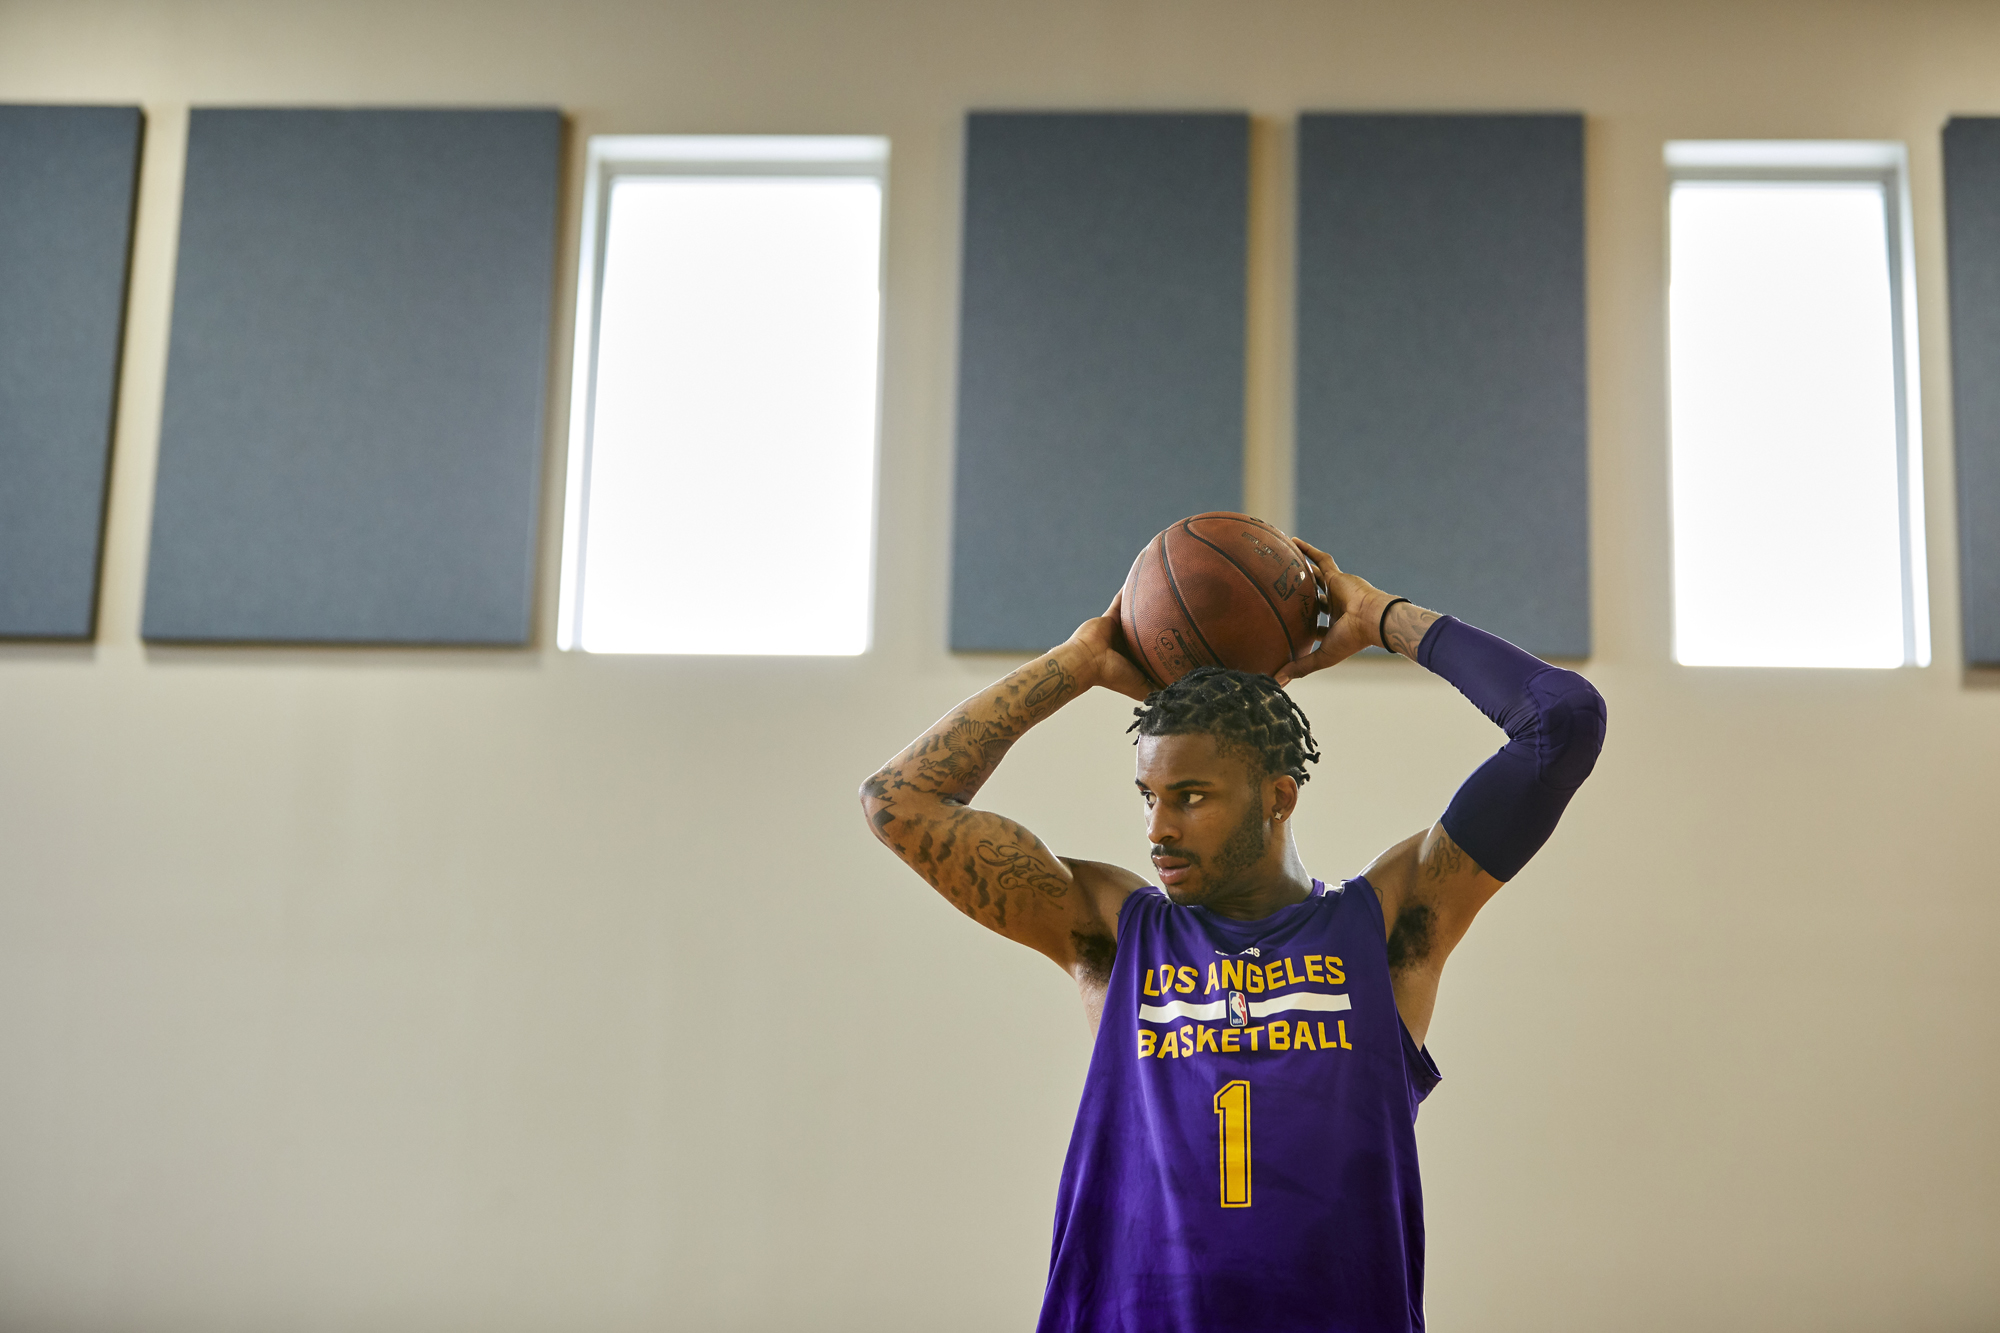 7ded28c2f358 Vander Lee Blue II recently signed a contract with the Los Angeles Lakers  for his second stint on the team.